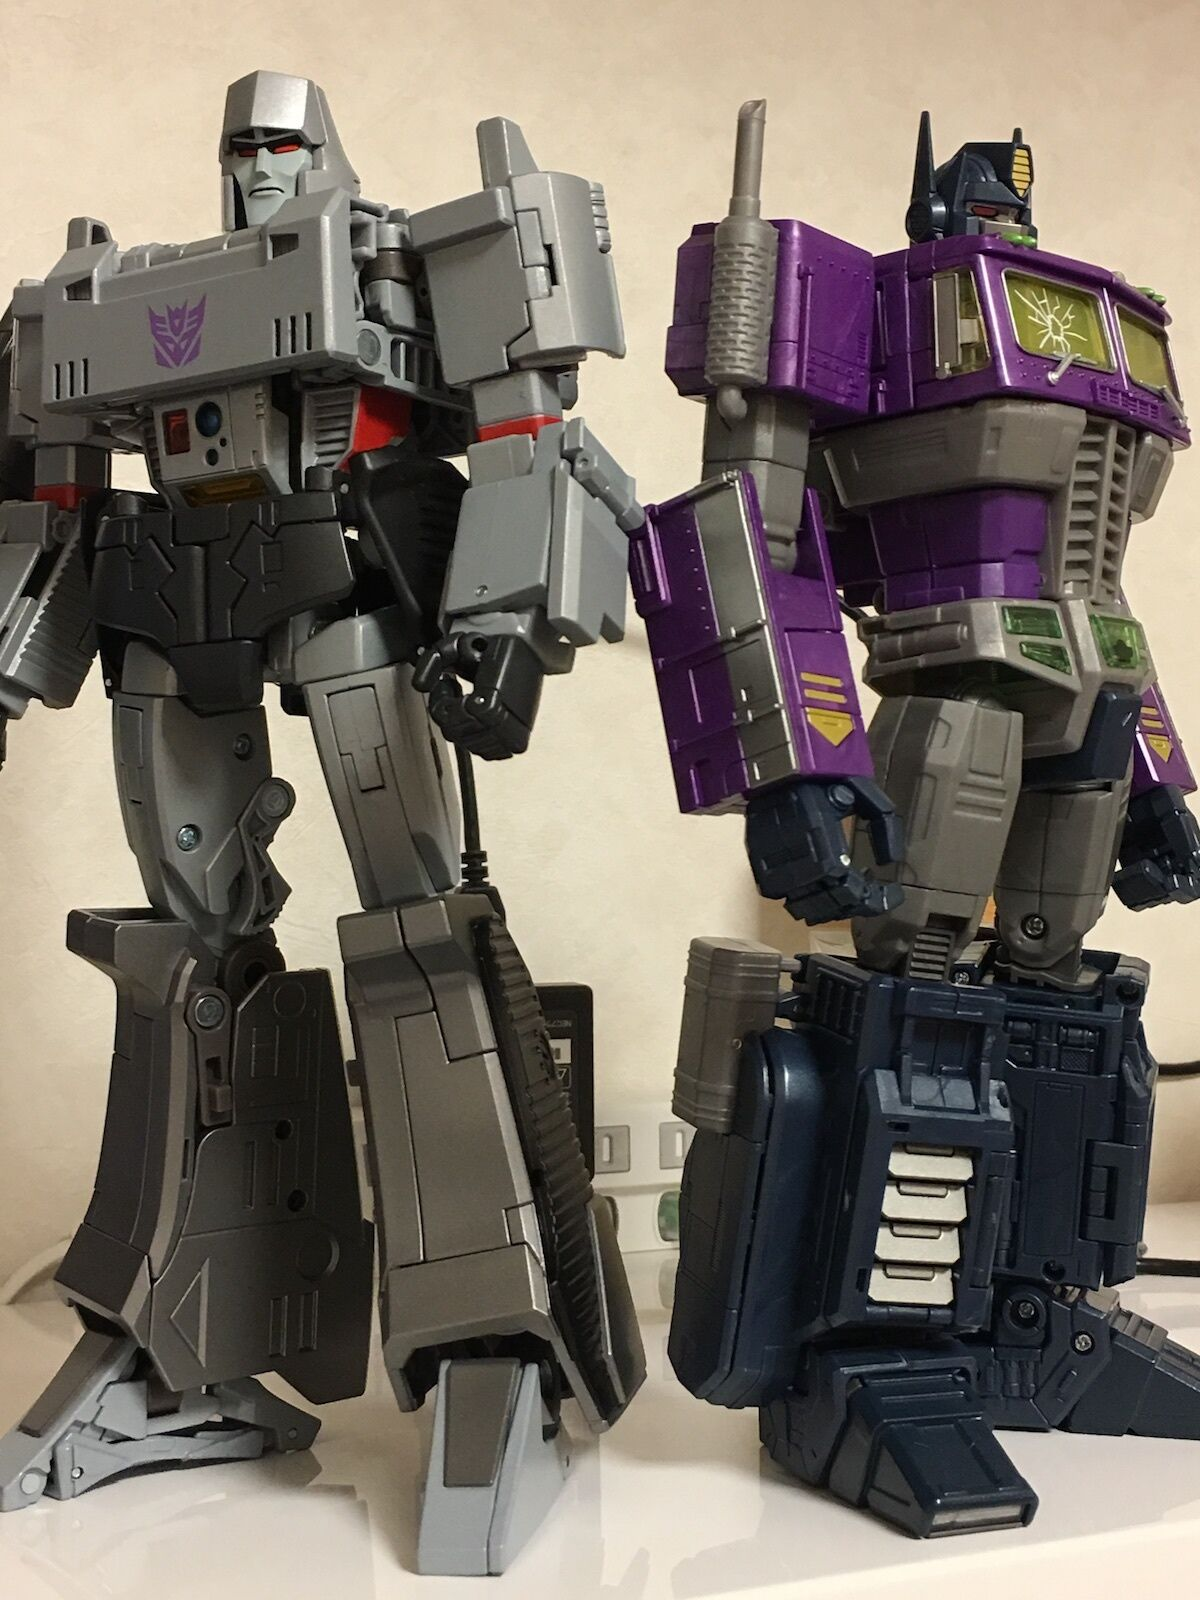 Rare TRANSFORMERS Shattered Glass Masterpiece OptimusPrime & MP-36 Megatron set